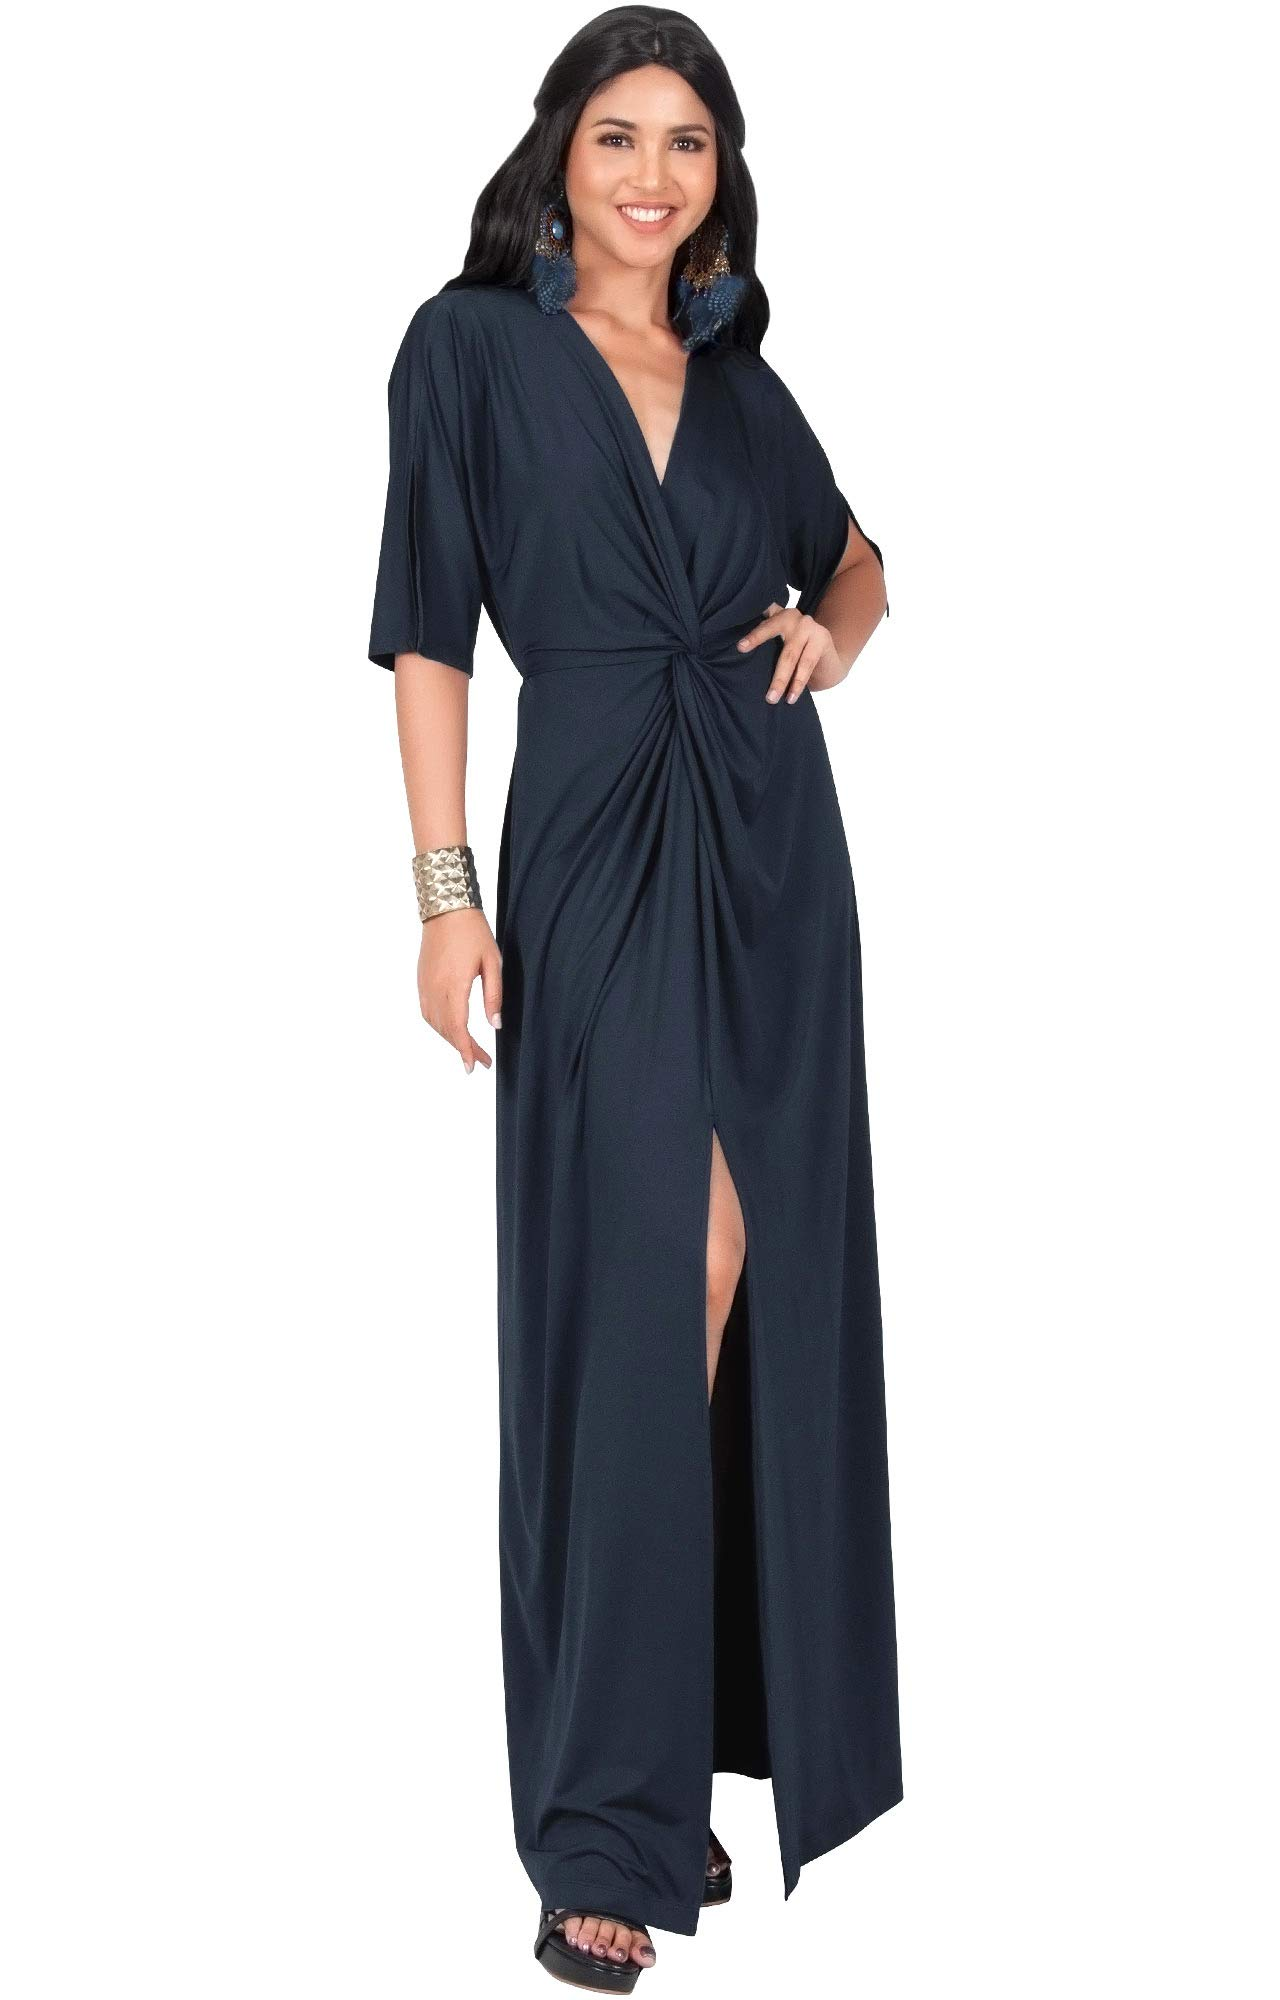 KOH KOH Plus Size Womens Long Sexy V-Neck Short Sleeve Cocktail Evening  Bridesmaid Wedding Party Slimming Casual Summer Maxi Dress Dresses Gown  Gowns a5c877fa7